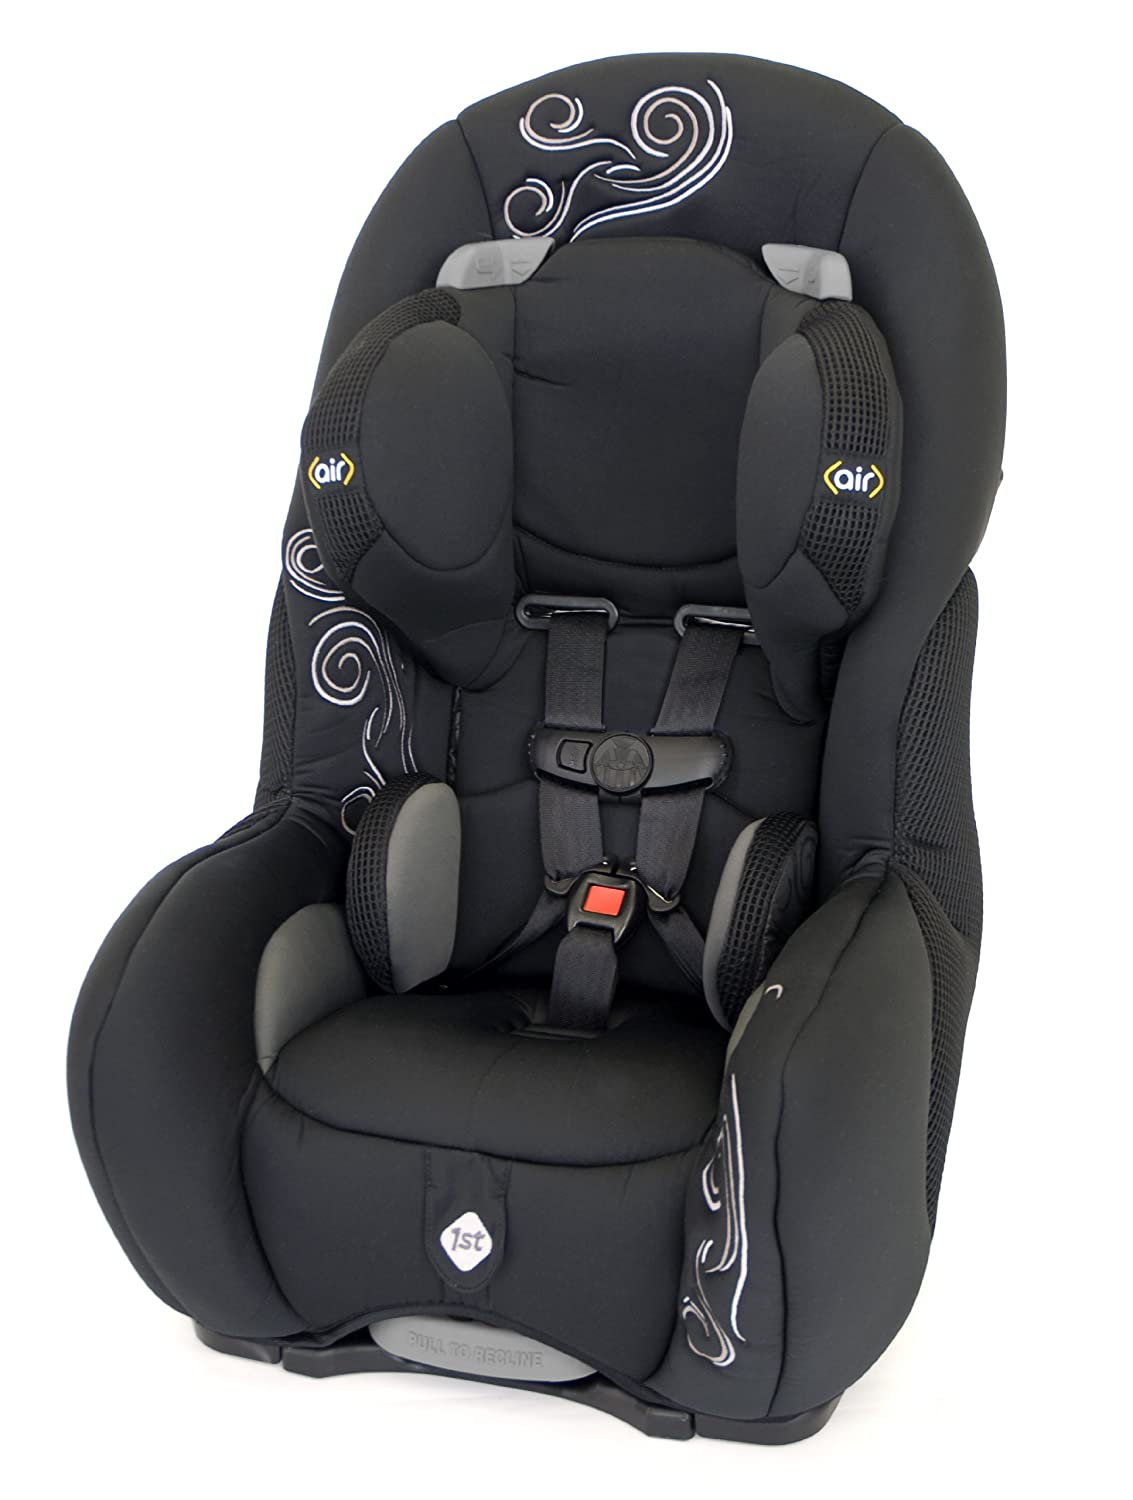 Safety 1st Complete Air 65 Se Convertible Car Seat in Oxygen: Amazon